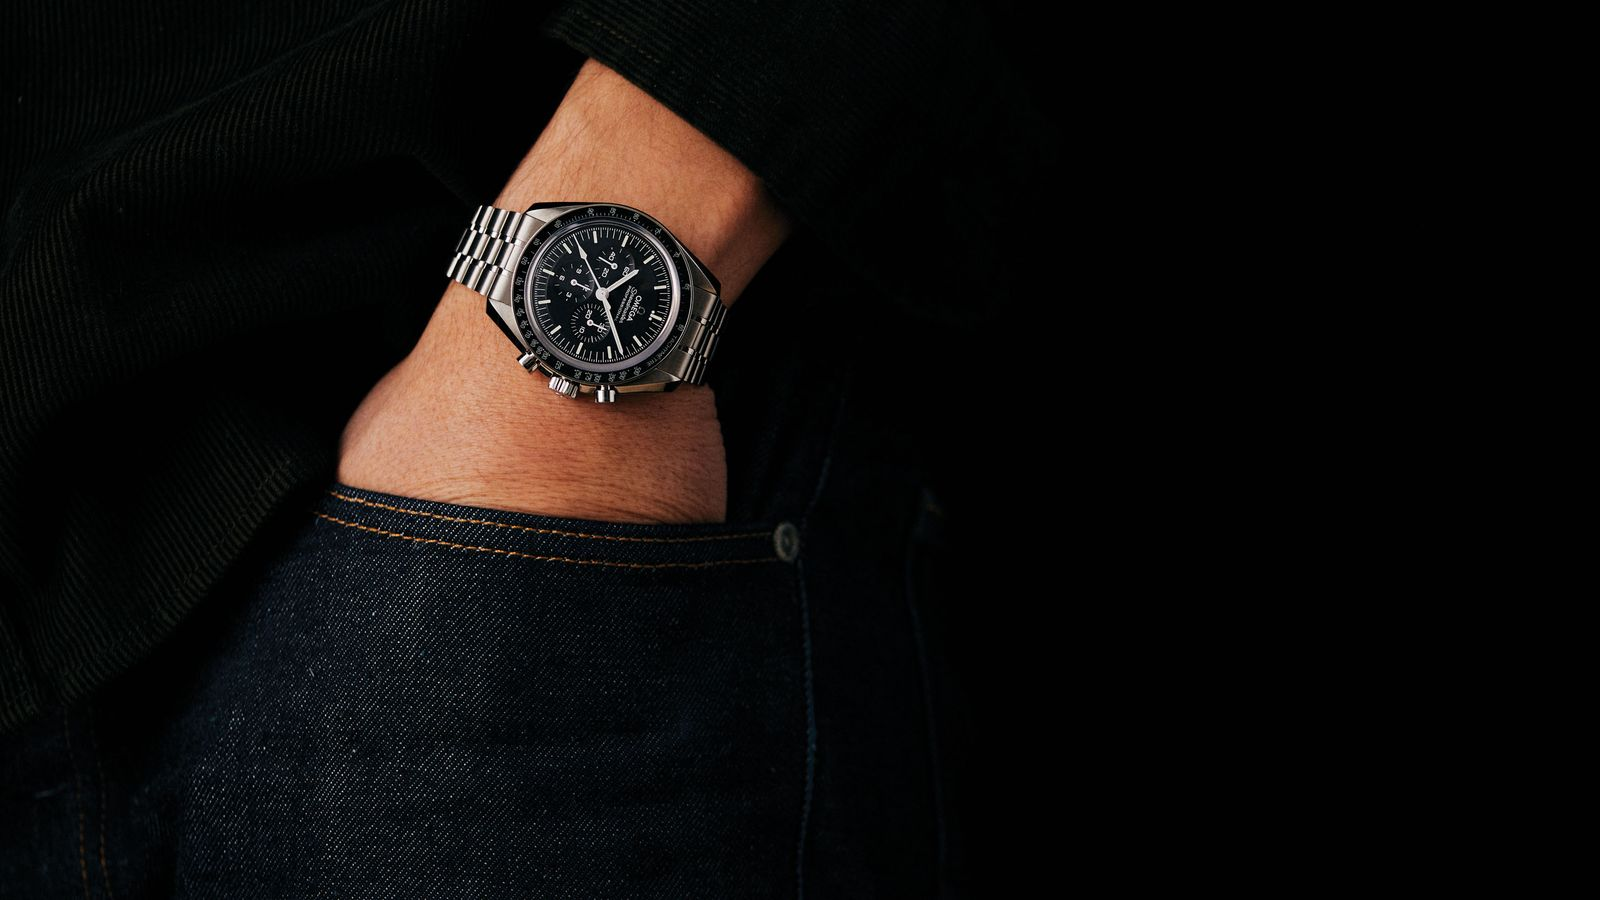 The Omega Speedmaster Moonwatch Professional Co-Axial Master Chronometer